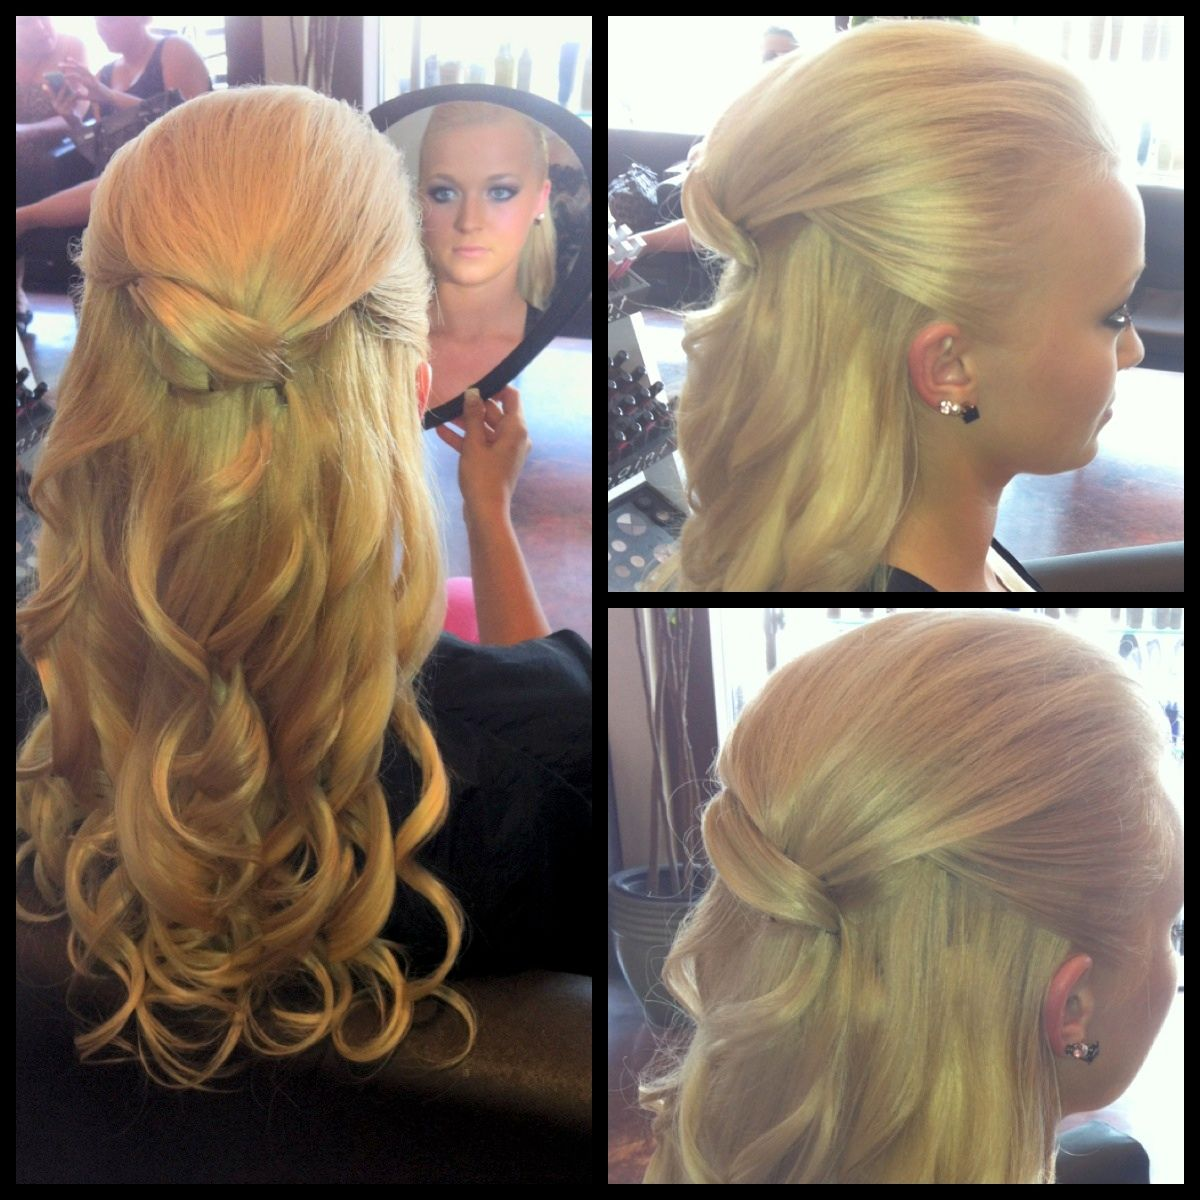 1/2 updo style thin blonde hair with clip in hair extensions